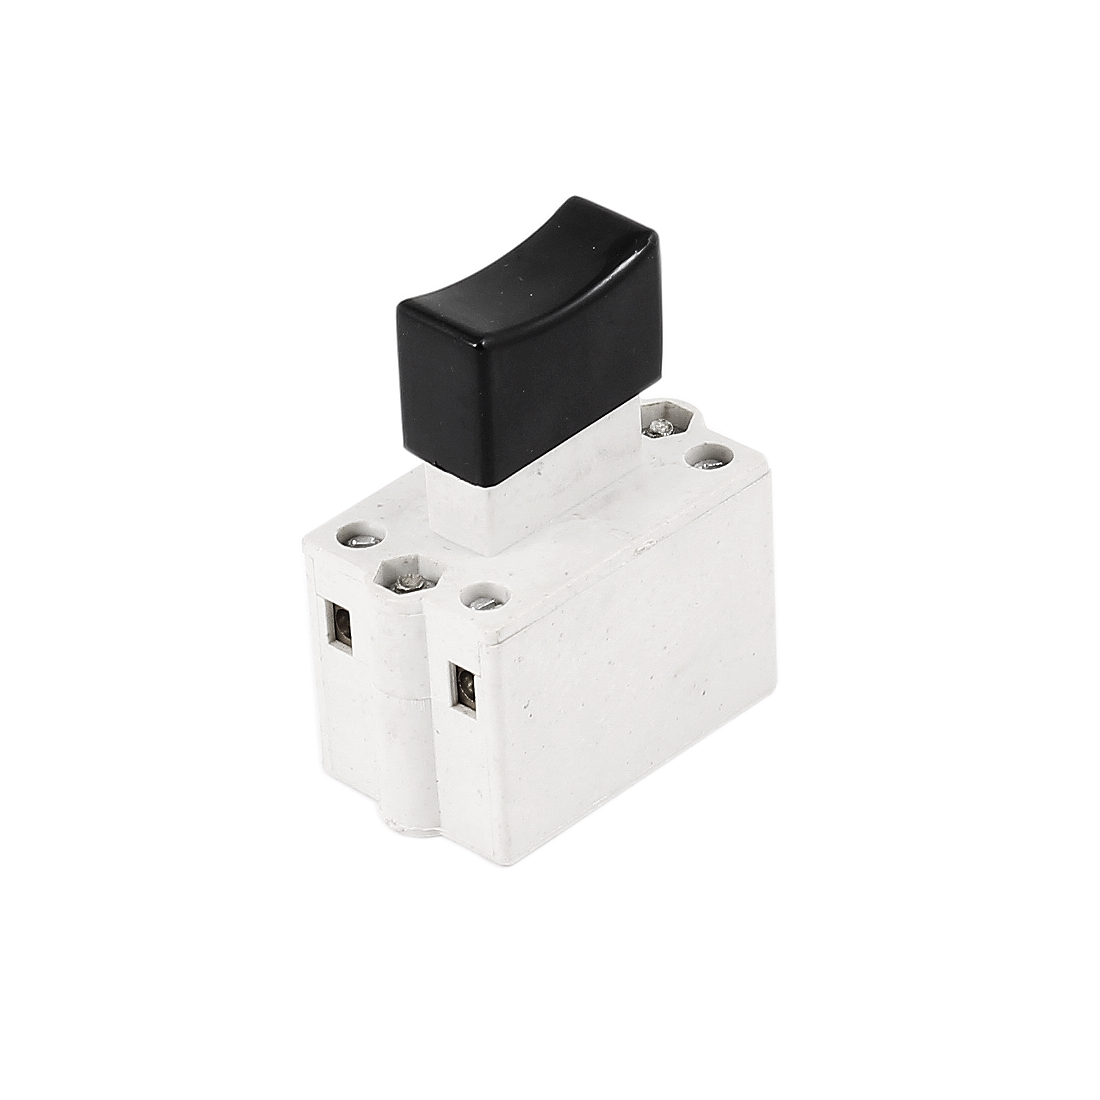 UXCELL Ac 16A 220/380V Dpst Momentary Trigger Switch For Cutting ...